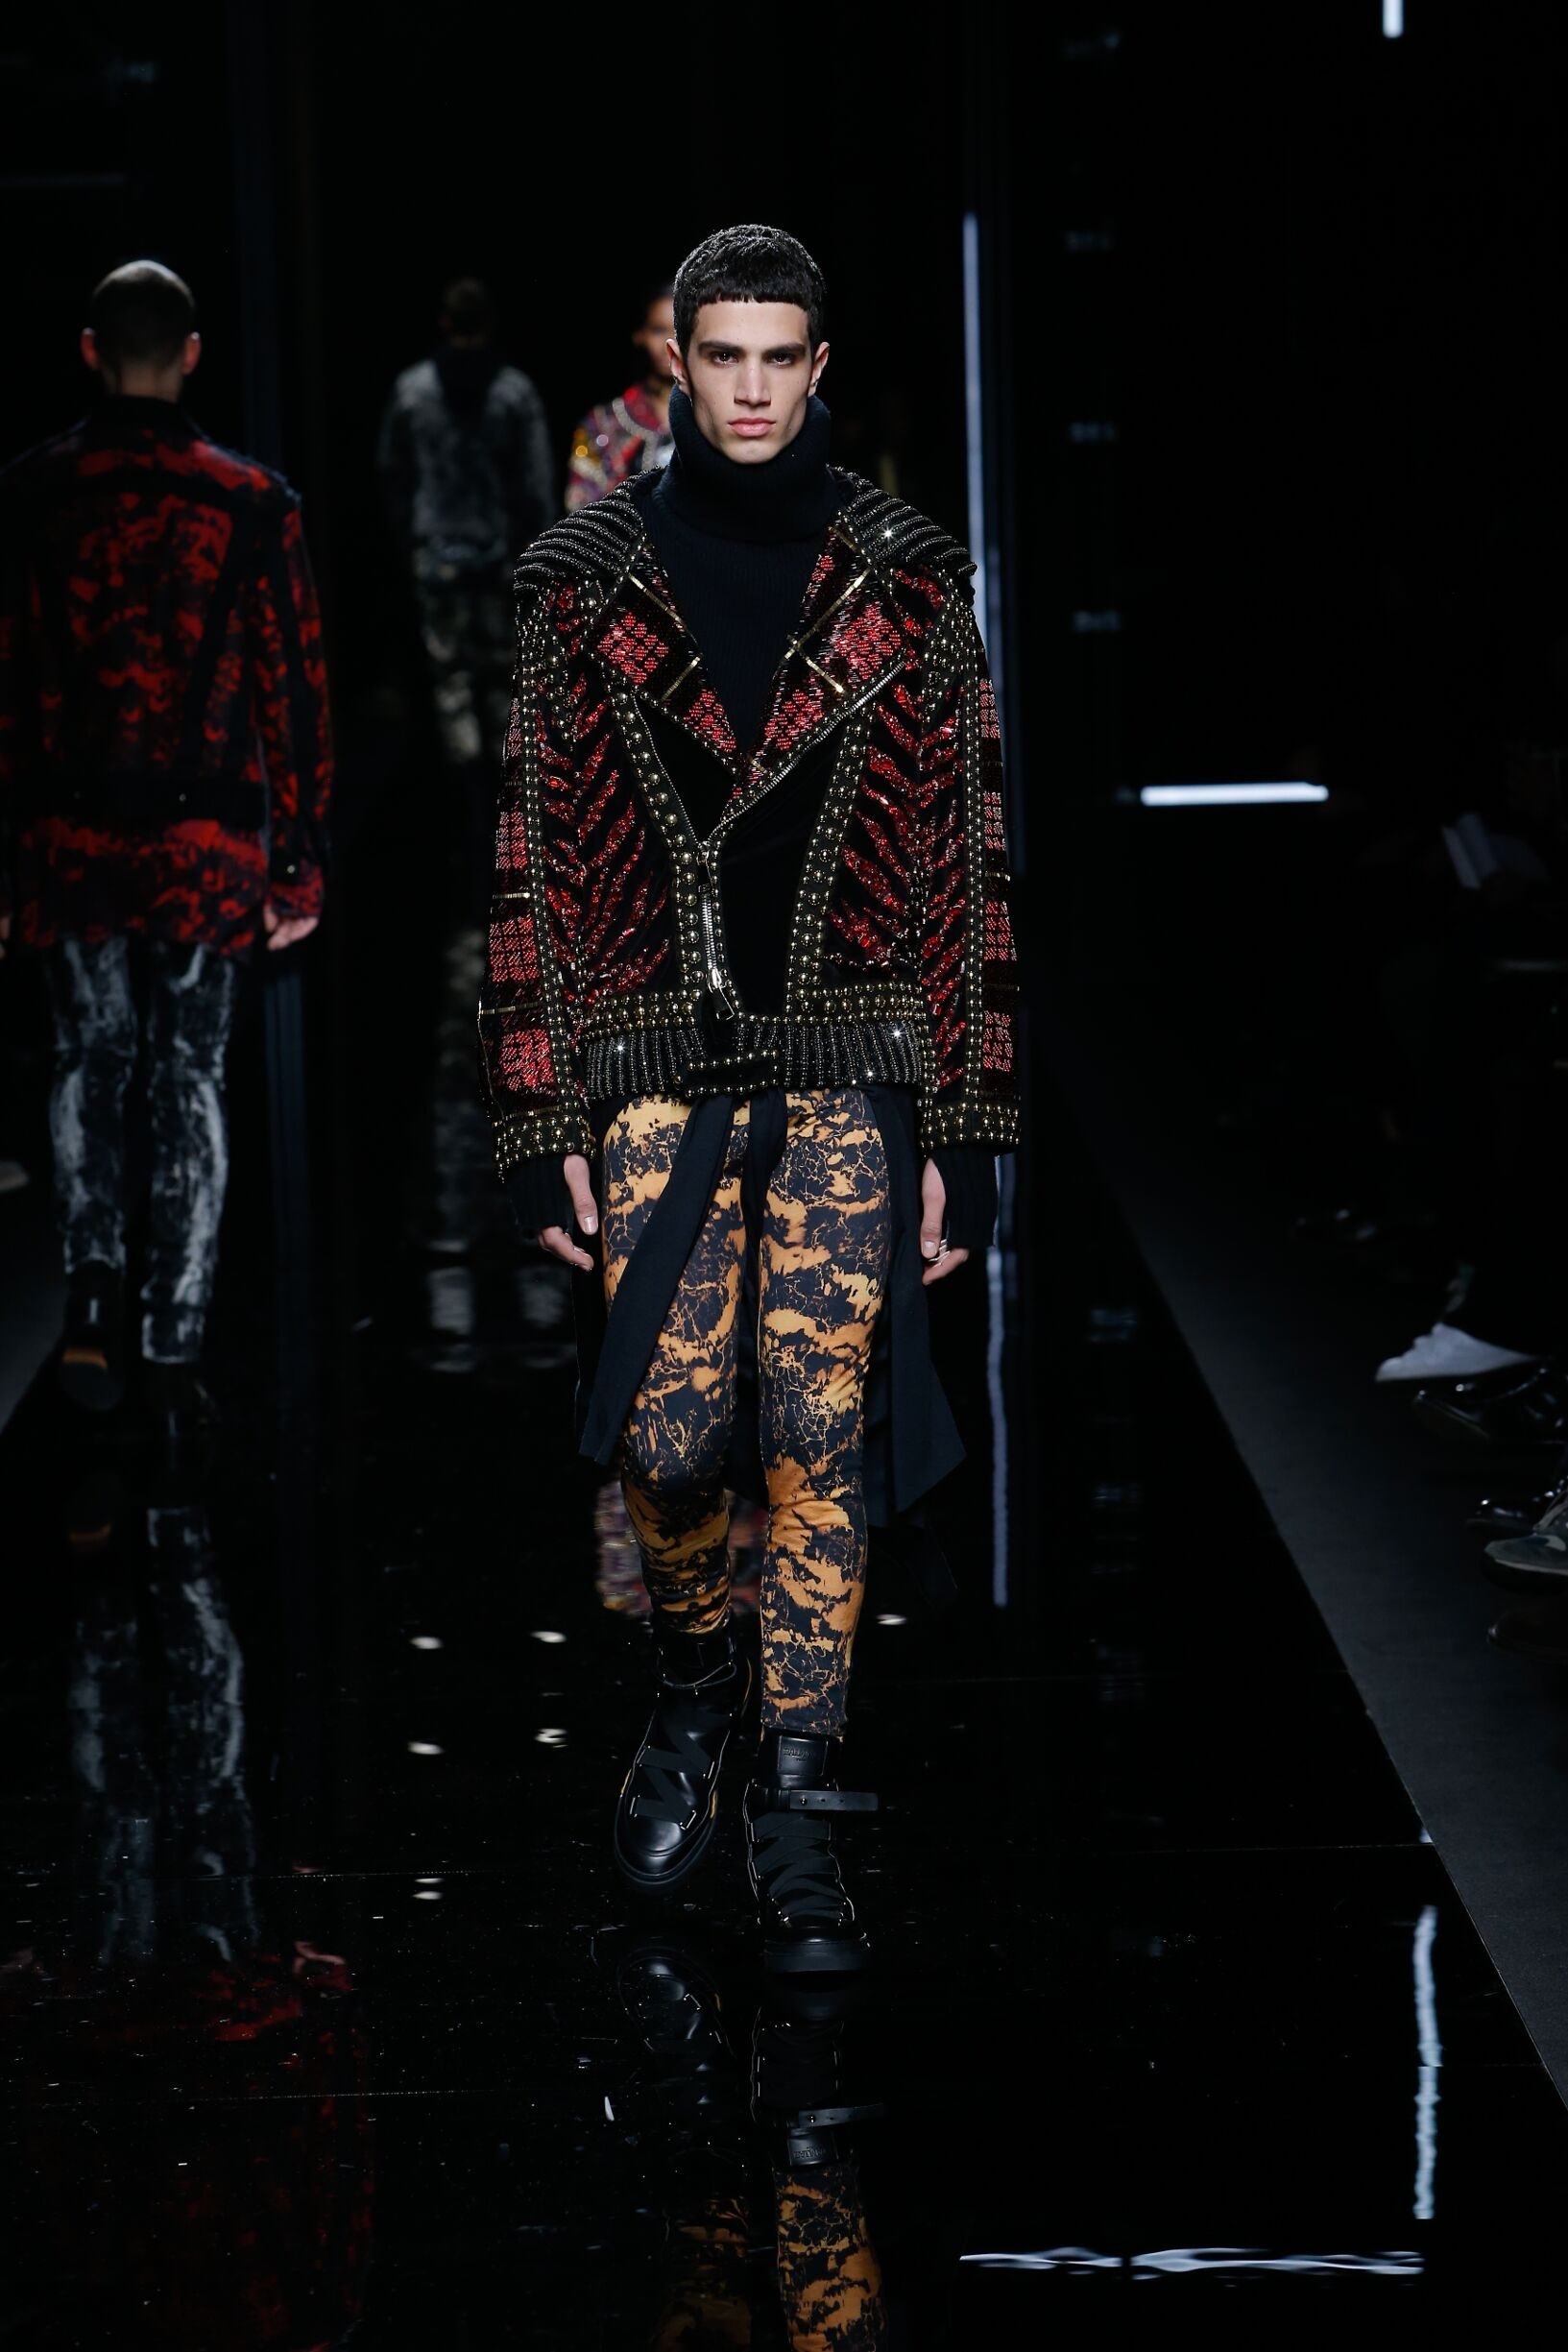 FW 2017-2018 Balmain Fashion Show Paris